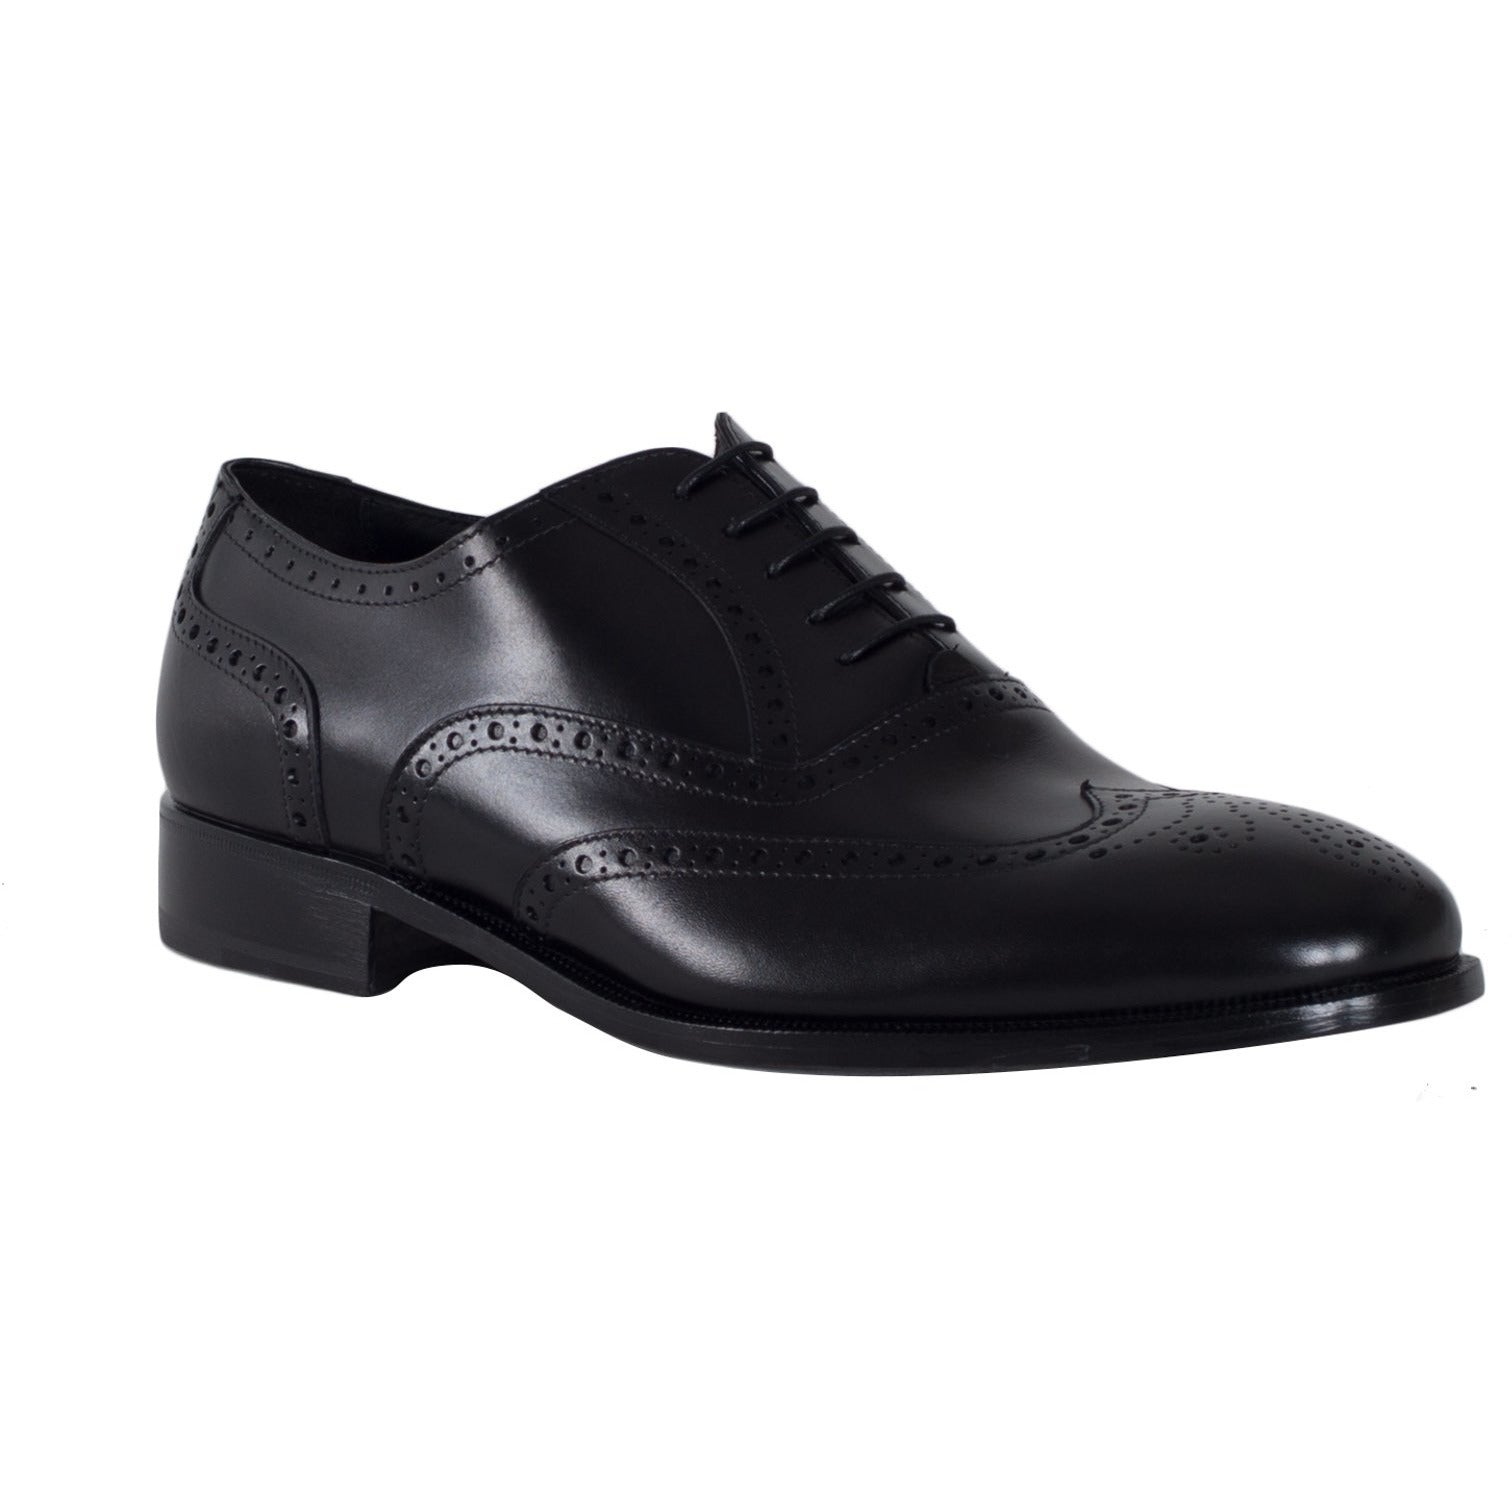 Jennifer Tattanelli crafted in Florence these wingtip men shoes feature brogued details and a genuine leather upper in a classic lace-up style